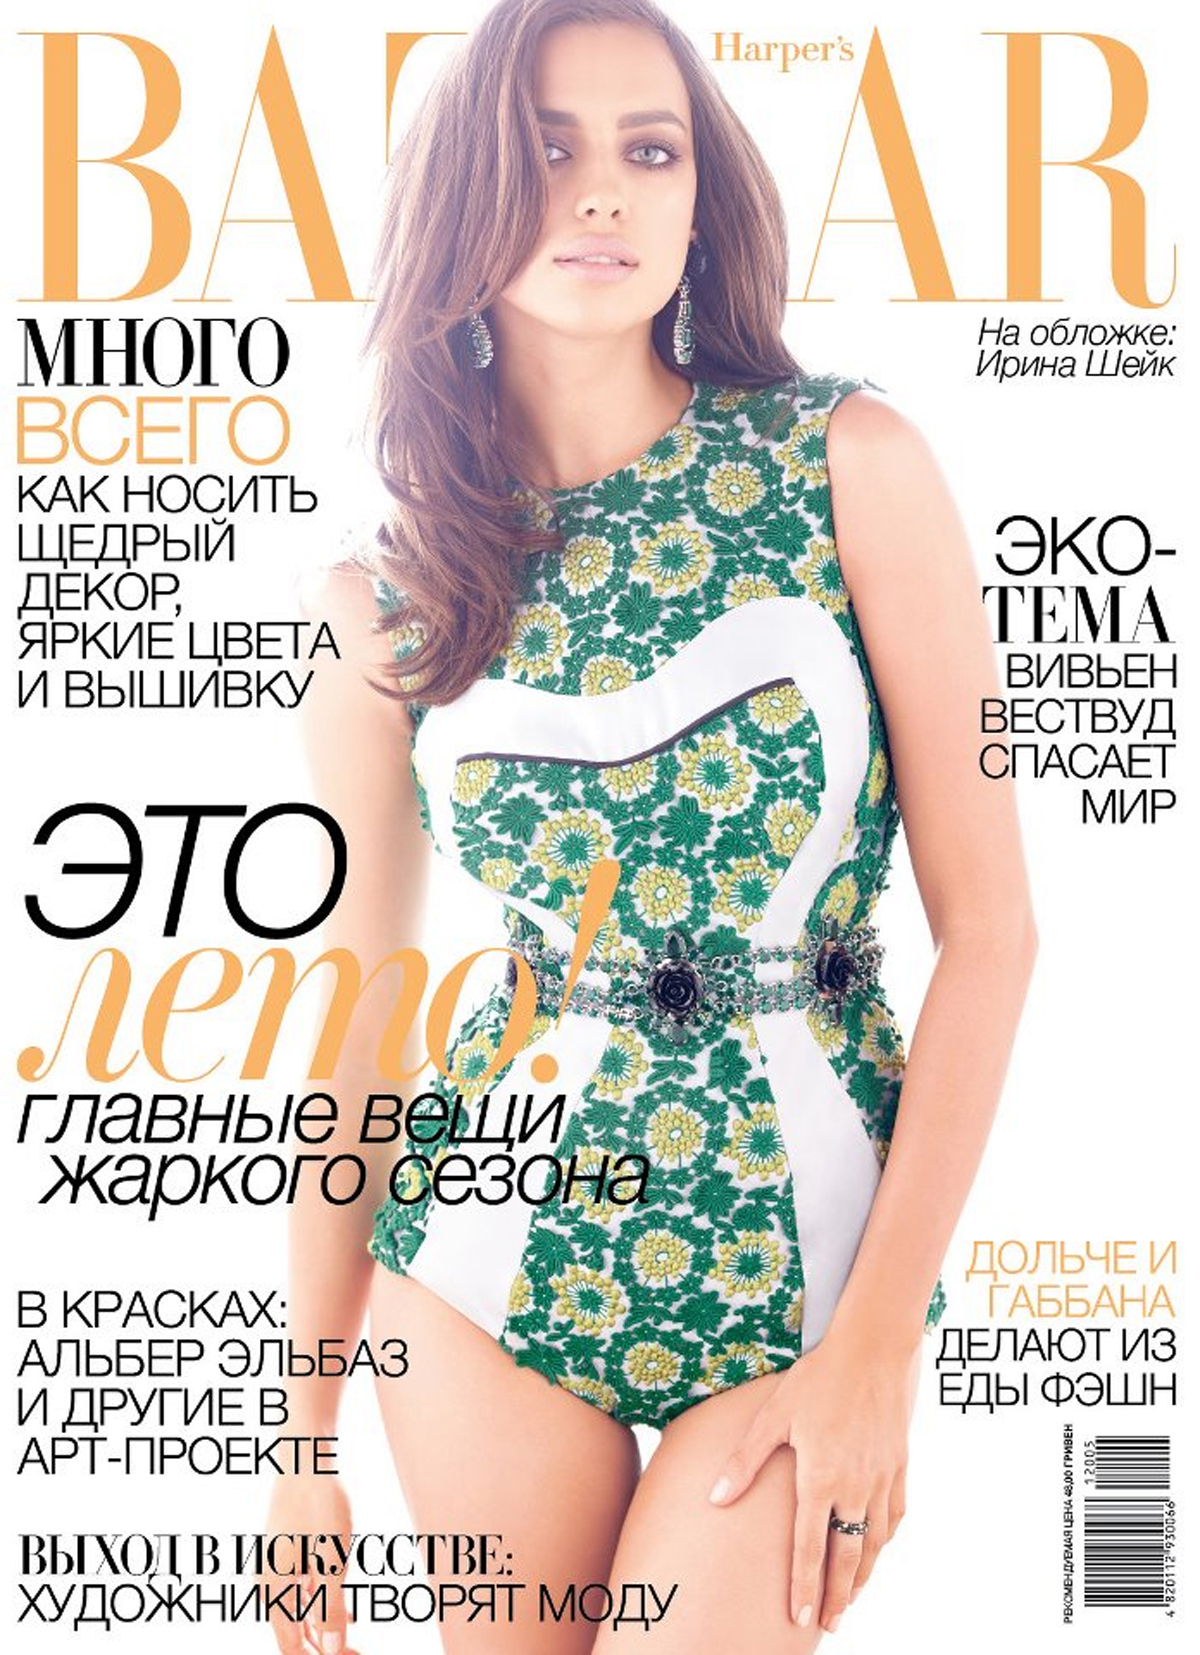 Harper's Bazaar Ukraine, May 2012